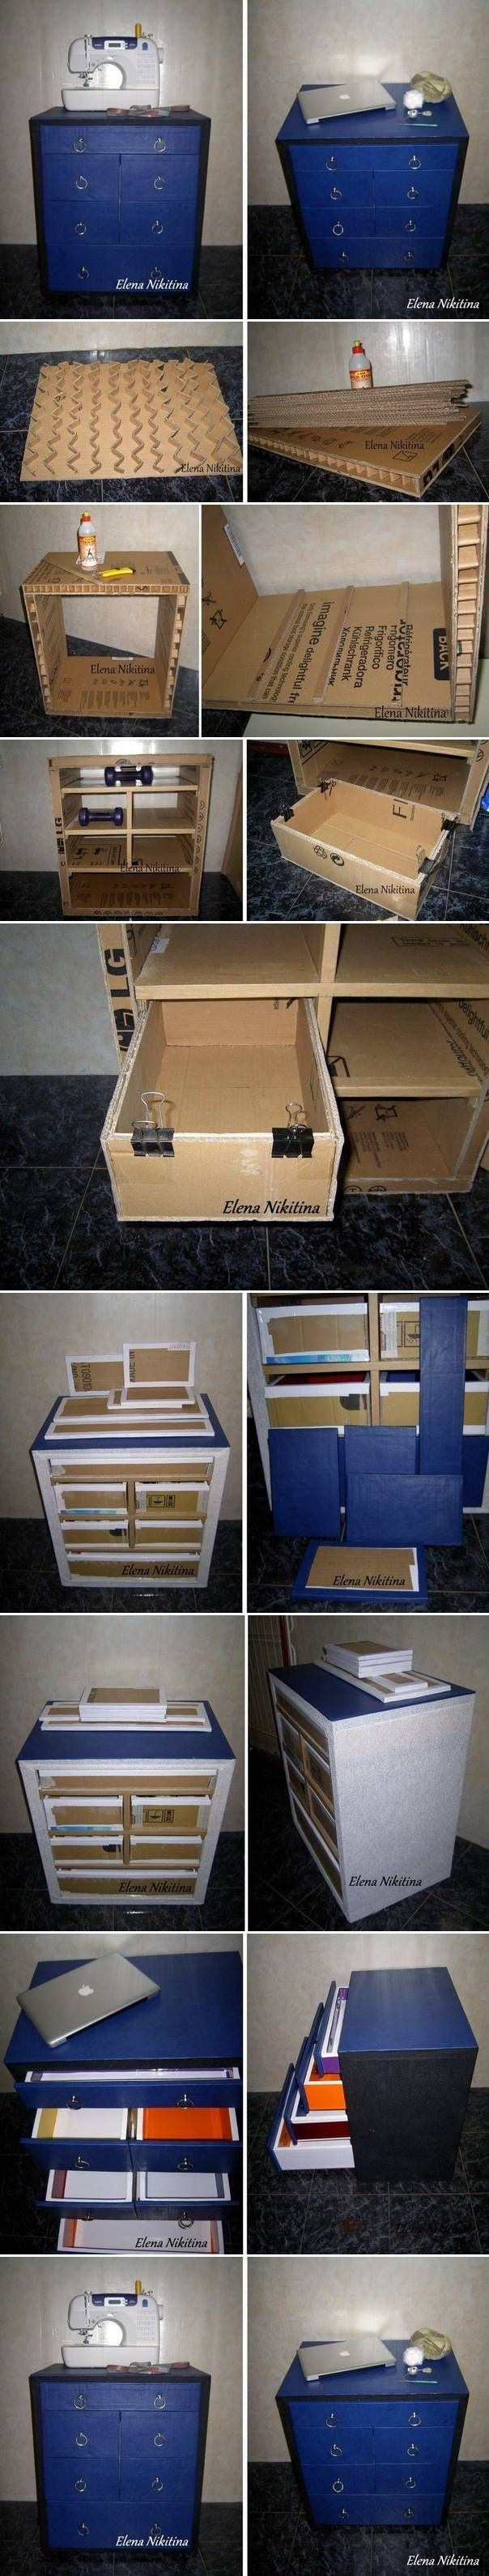 DIY Cardboard Chest with Drawers... Are you kidding me!? Who makes furniture out of cardboard!? I don't think I would but, it's pretty crazy clever.